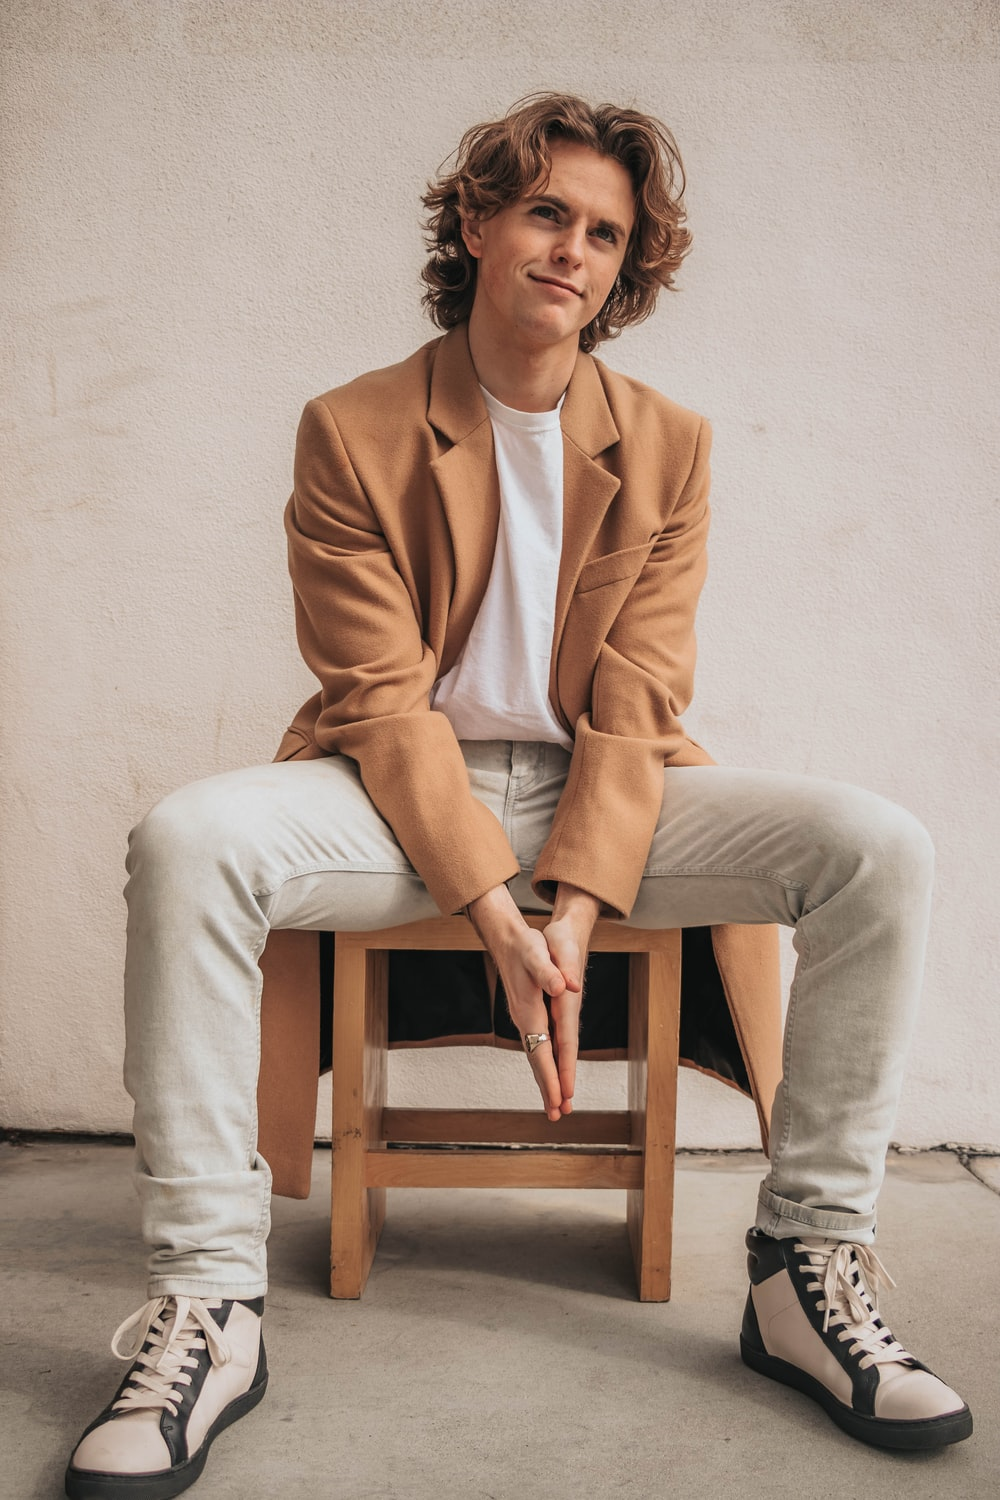 man sitting on a wooden chair